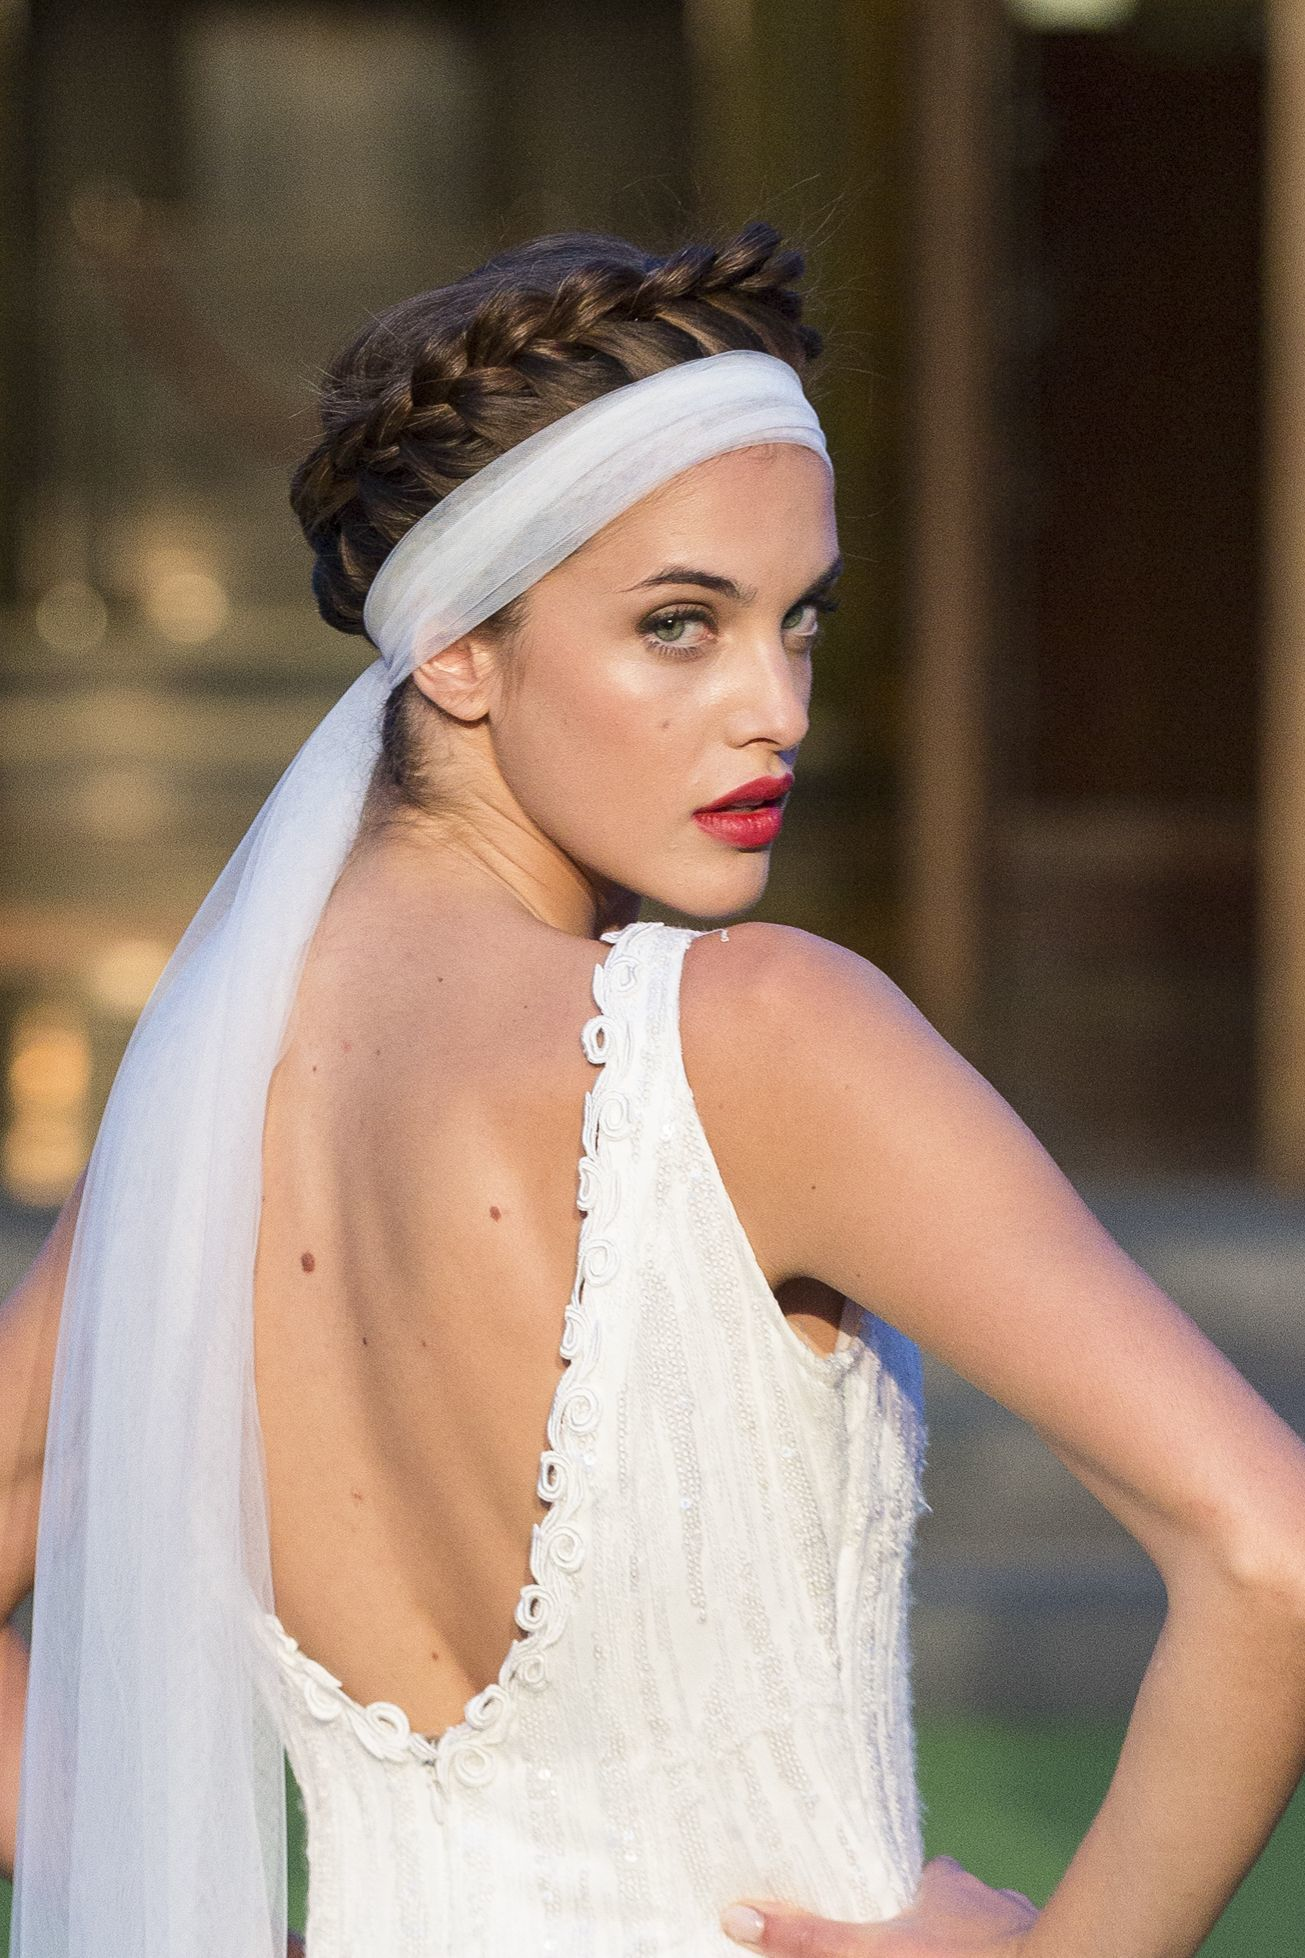 wedding updos: close up shot of model on the bridal runway with crown braid hairstyle, with a veil wrapped around it, wearing white dress and posing